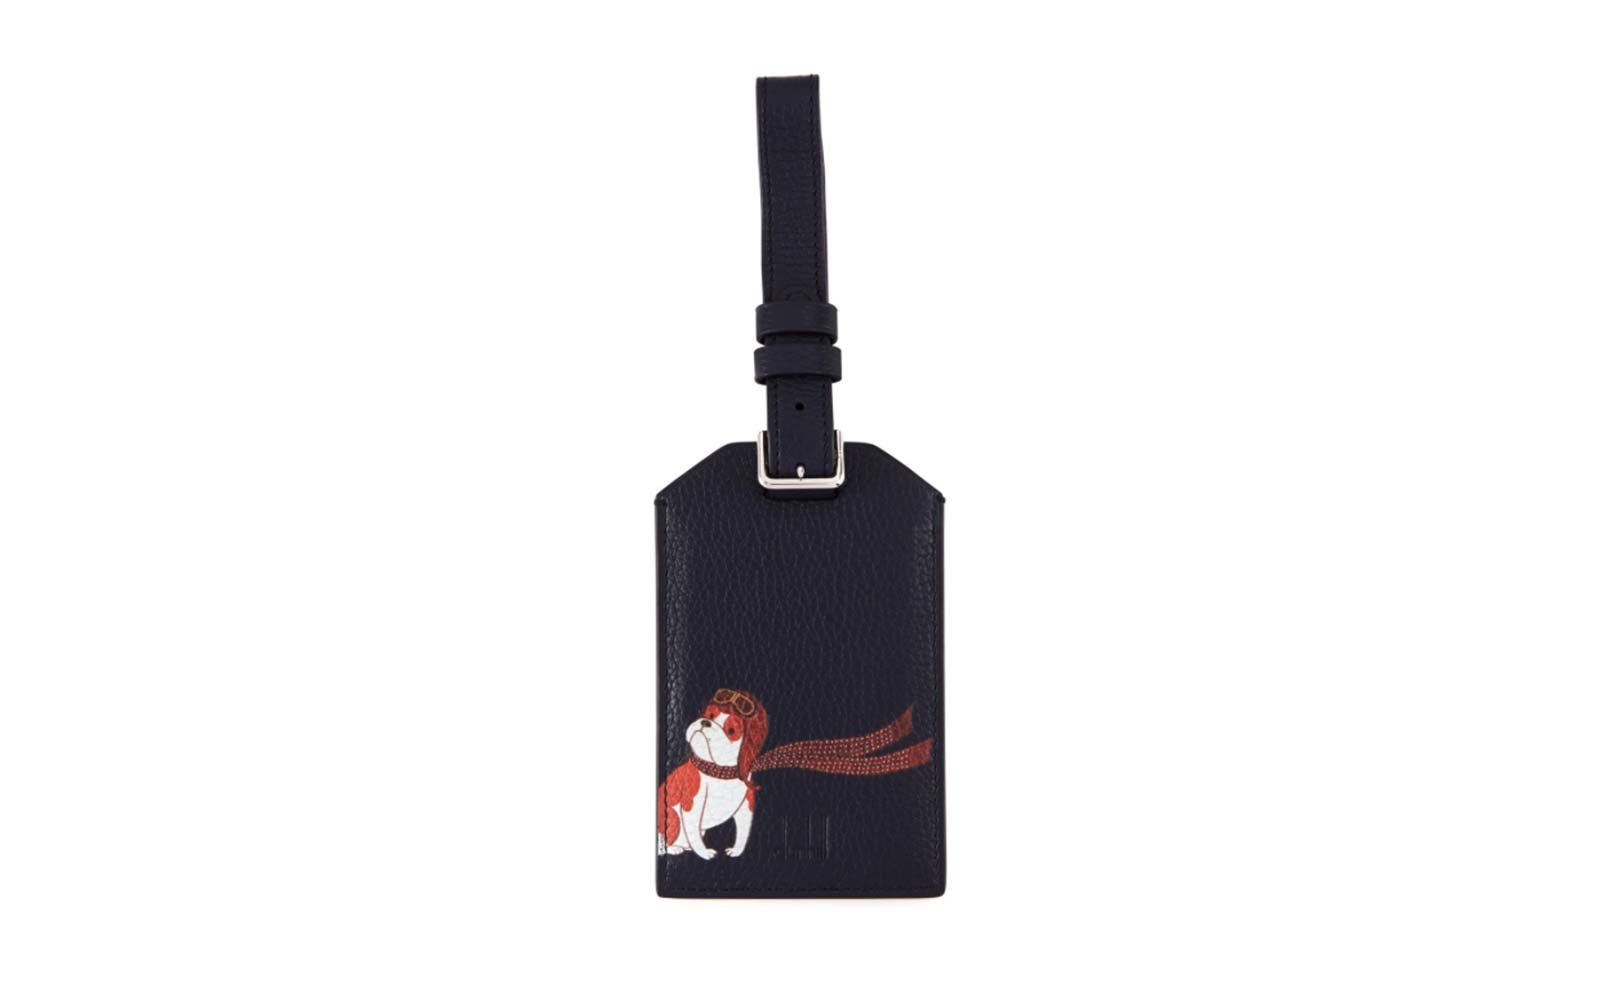 dunhill leather painted luggage tag neiman marcus holiday extravaganza gift